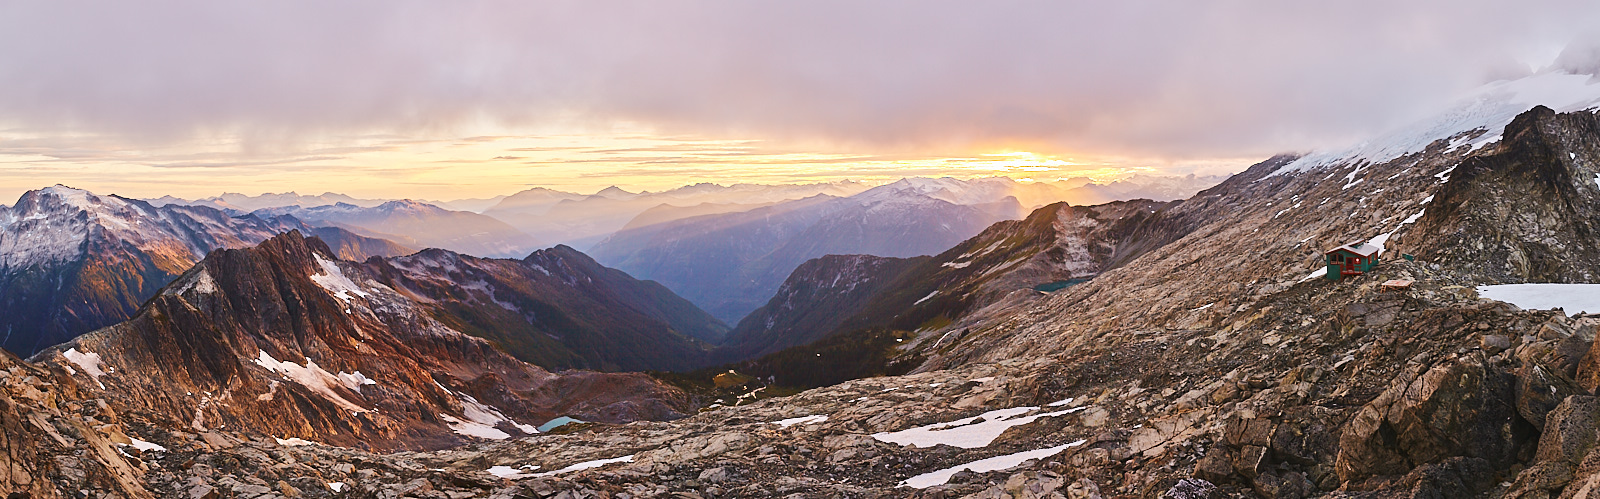 Sunset panorama with Haberl Hut visible on mid right